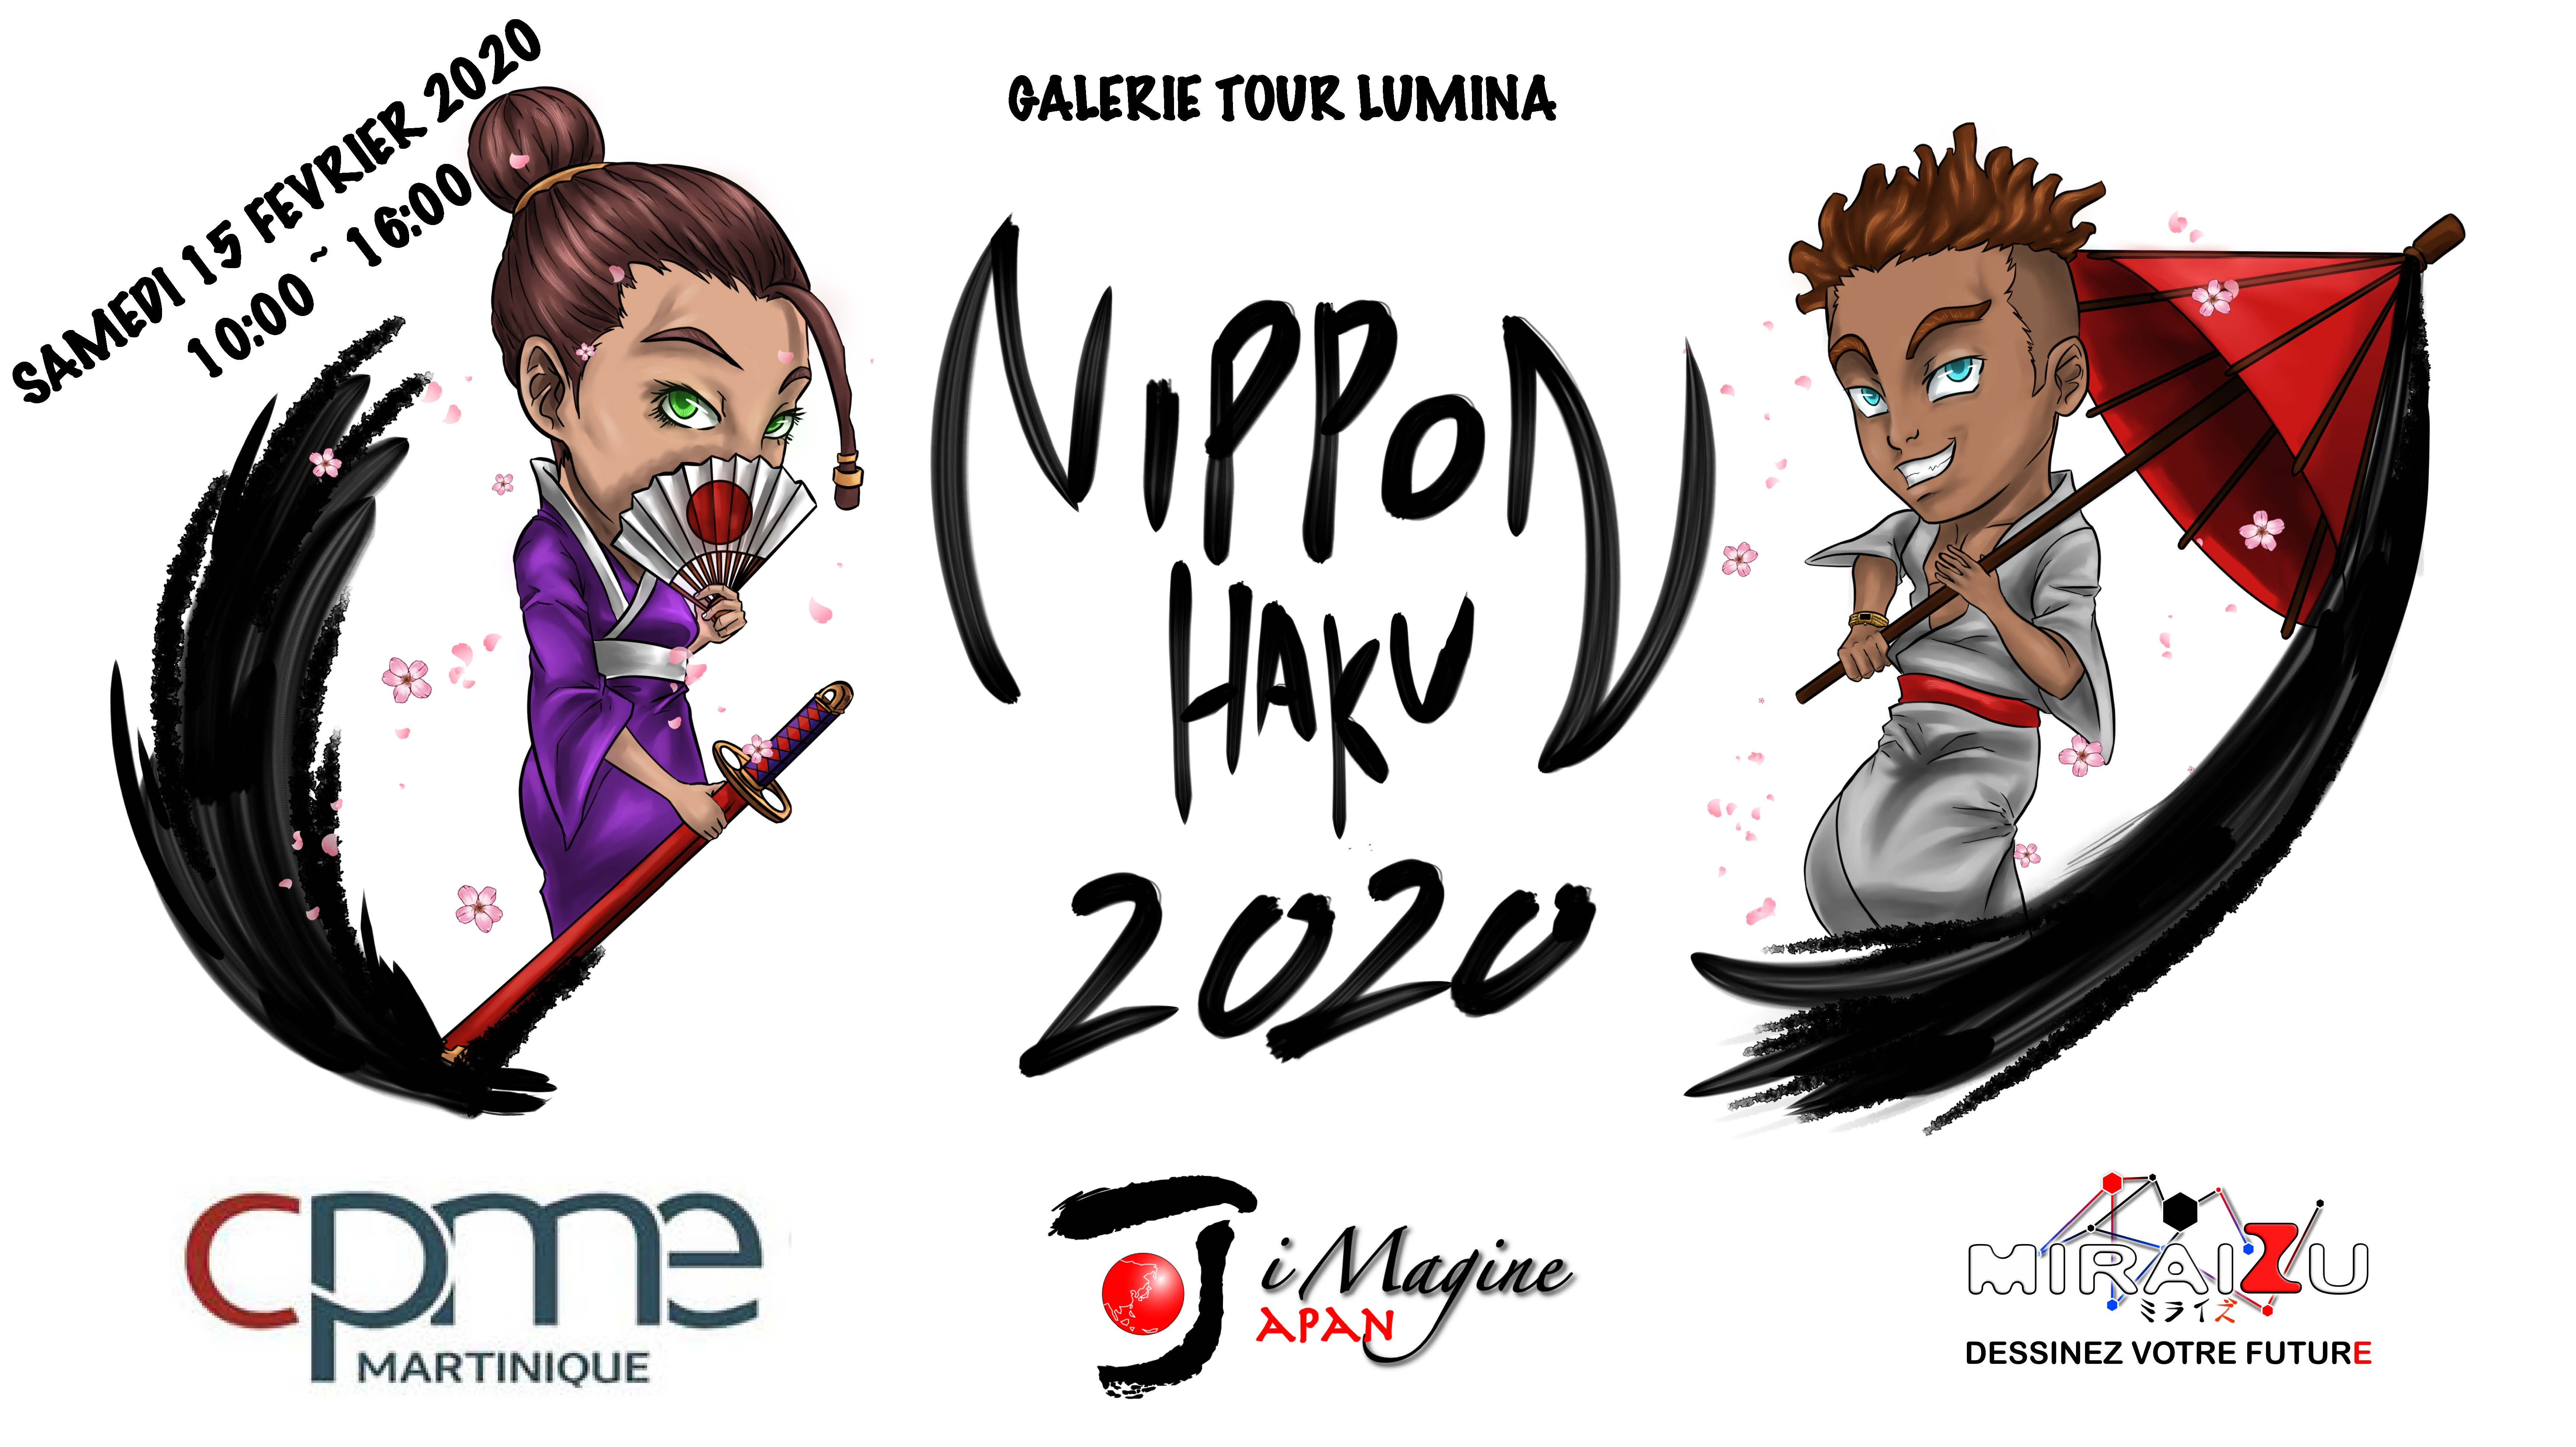 NIPPON HAKKU 2020 organise a Fort-de-France en collaboration avec la CPME Martinique